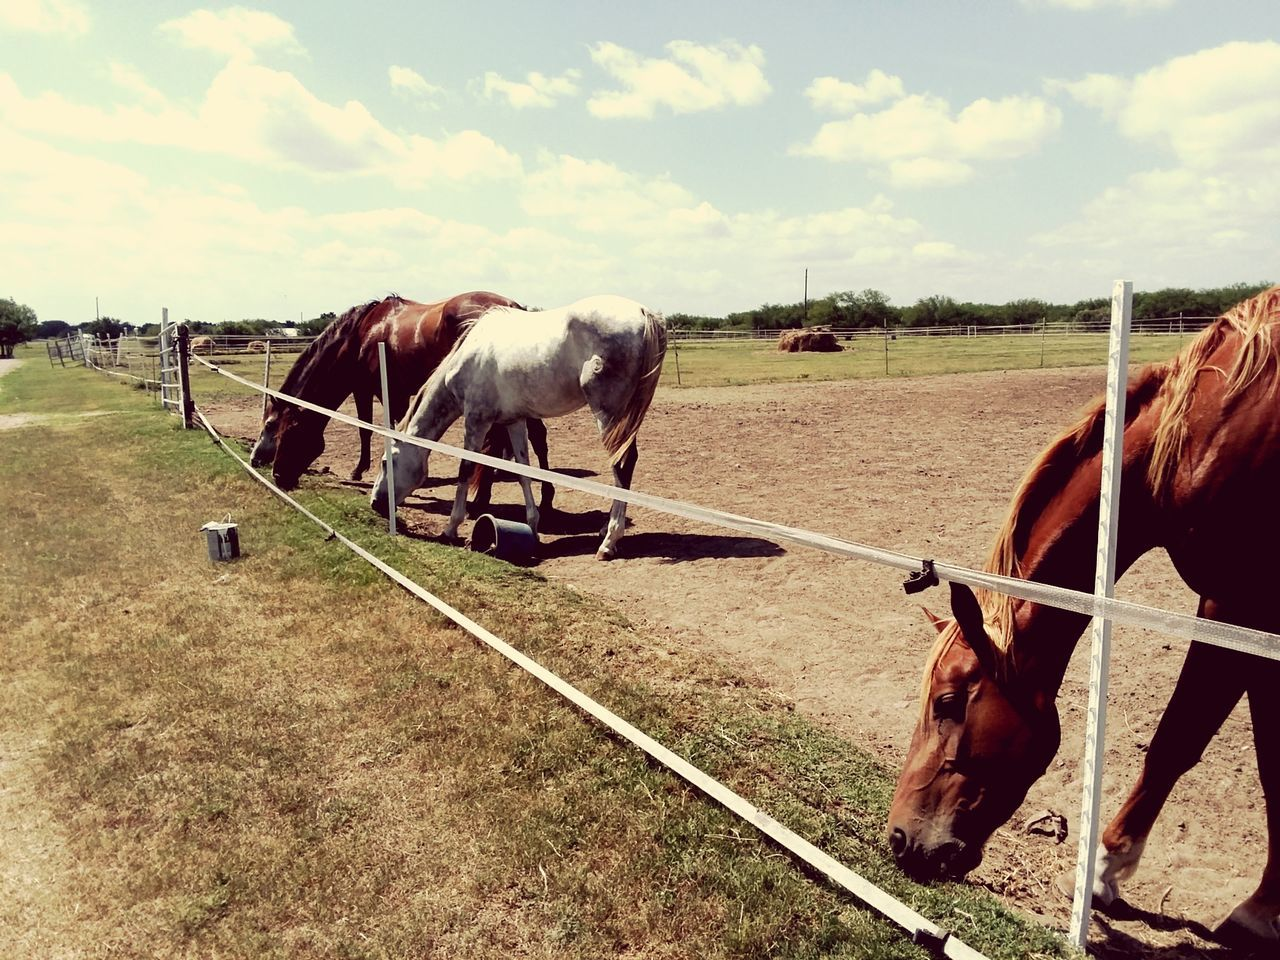 EyeEm Selects Horse Domestic Animals Livestock Animal Agriculture Mammal Animal Themes One Animal Paddock Field Brown Rural Scene Grazing Day Sky No People Outdoors Nature Oil Pump